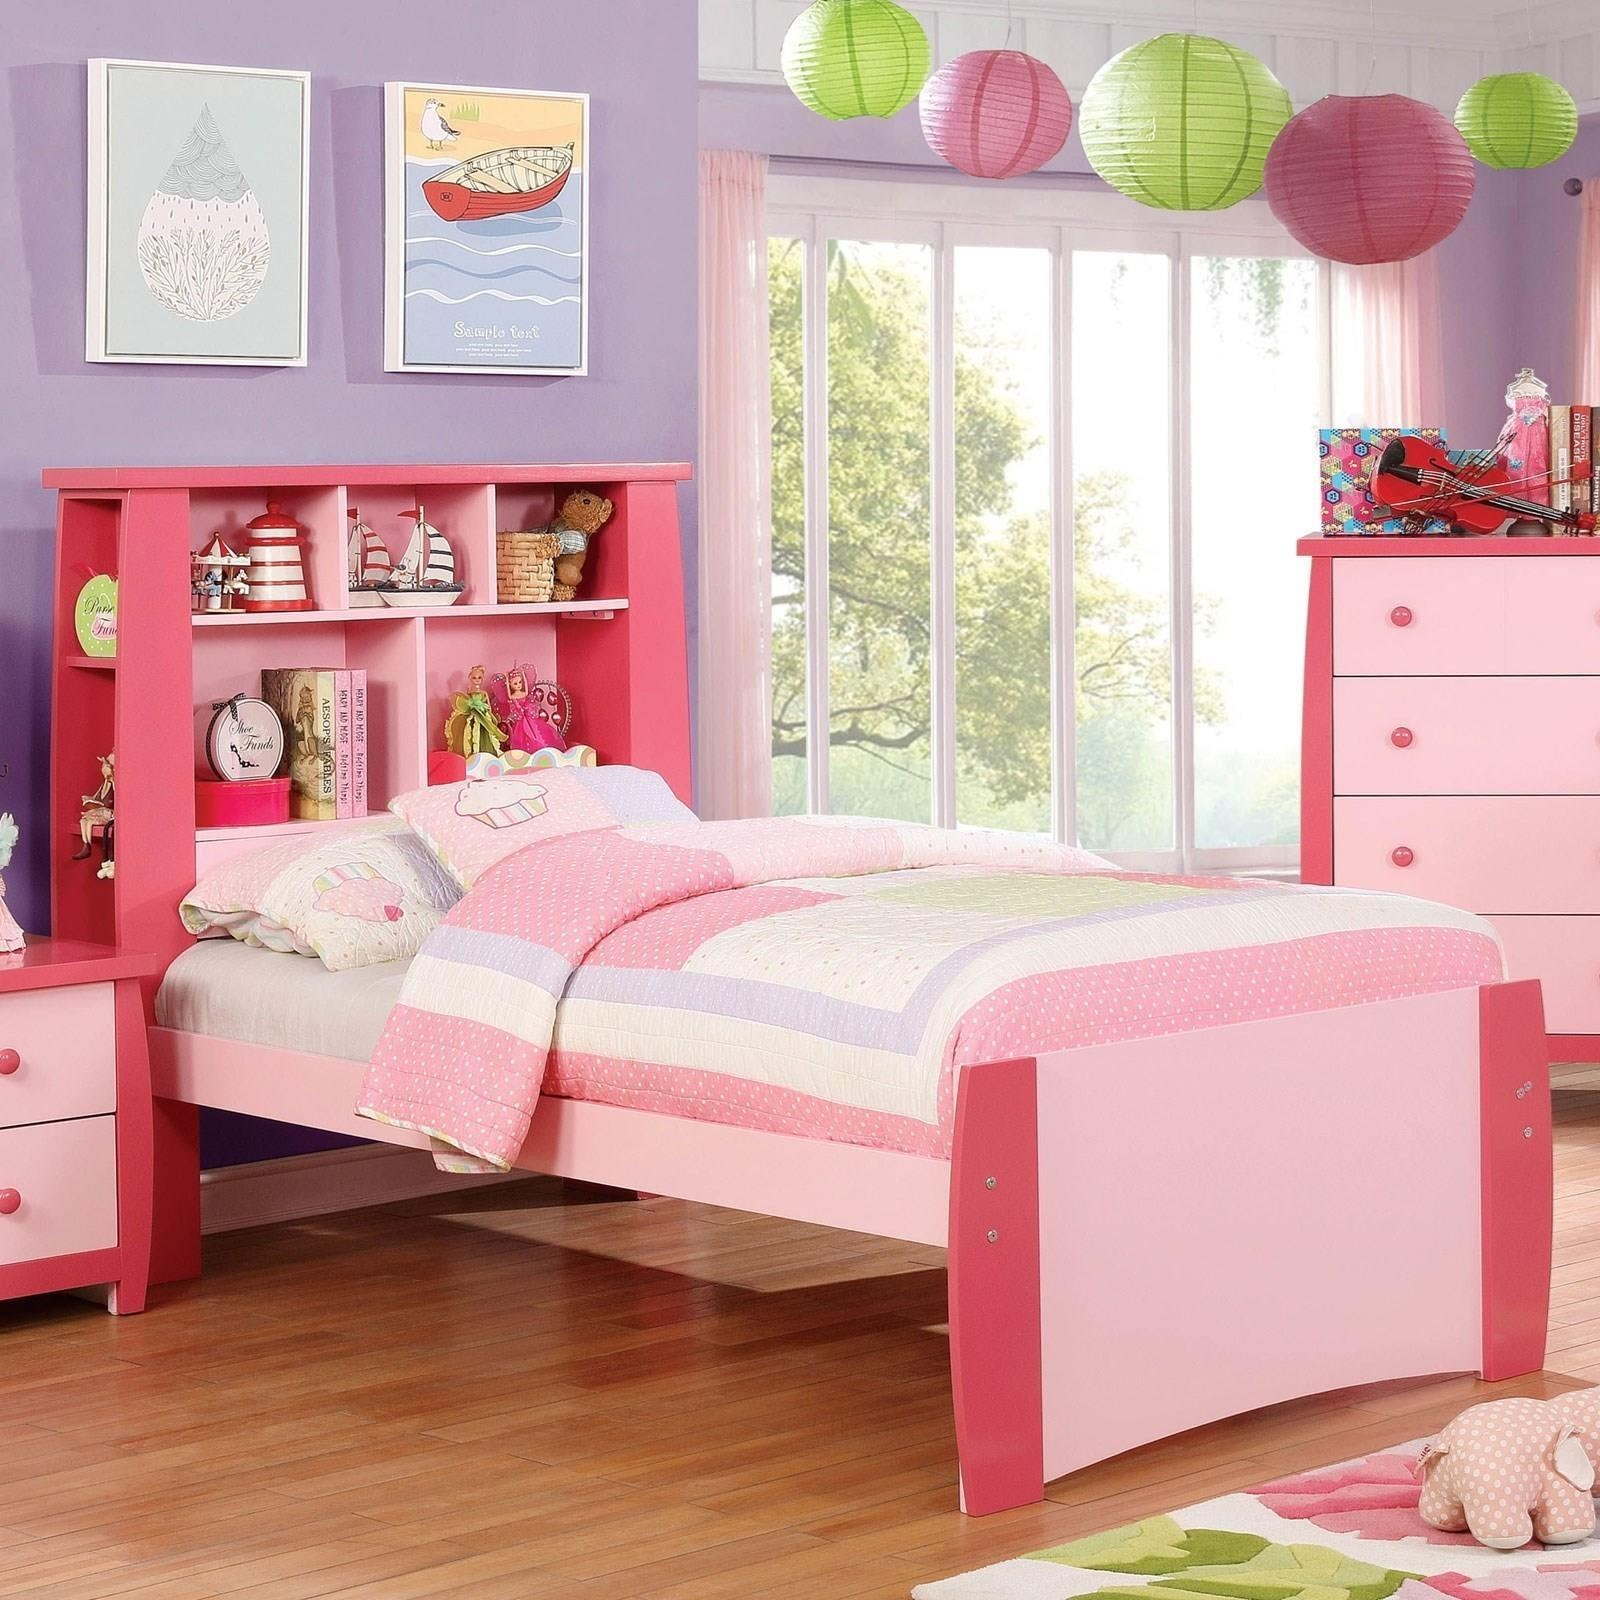 Marlee Twin Bed by Furniture of America at Corner Furniture